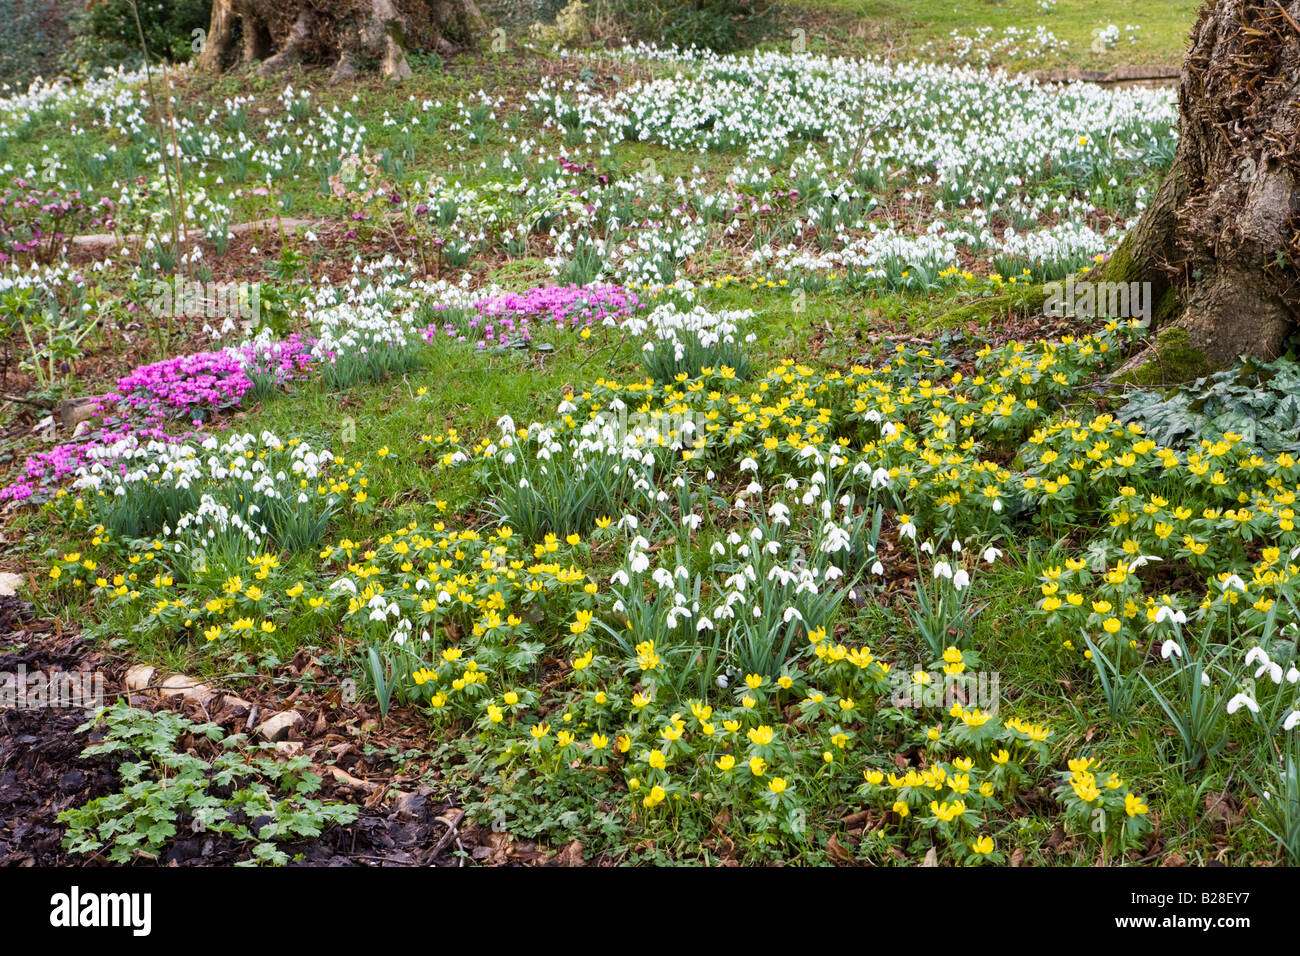 Snowdrops and early spring flowers in a Cotswold garden at Colesbourne Park, Gloucestershire - Stock Image